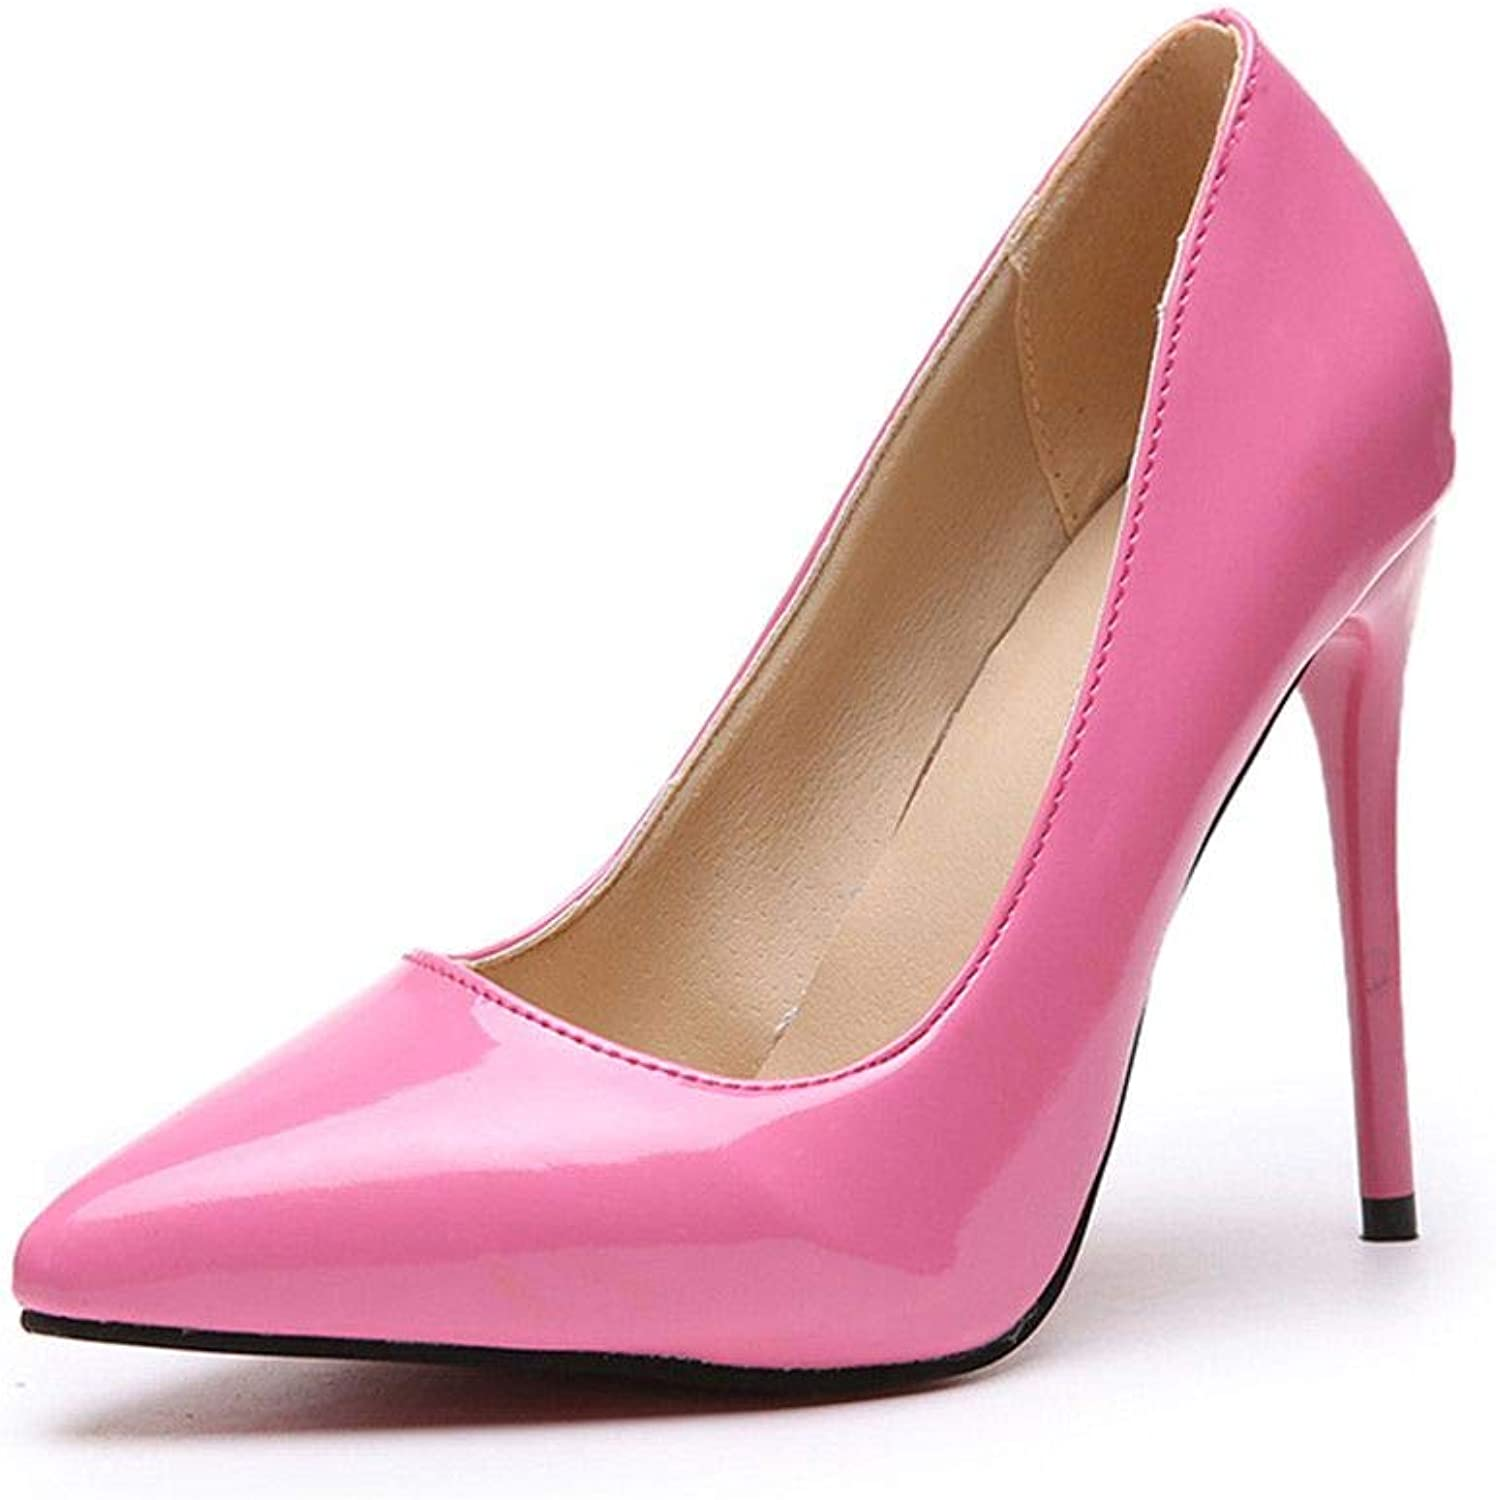 Evierup shoes Office Lady Women Pumps High Heels shoes Toe Female Sexy Party